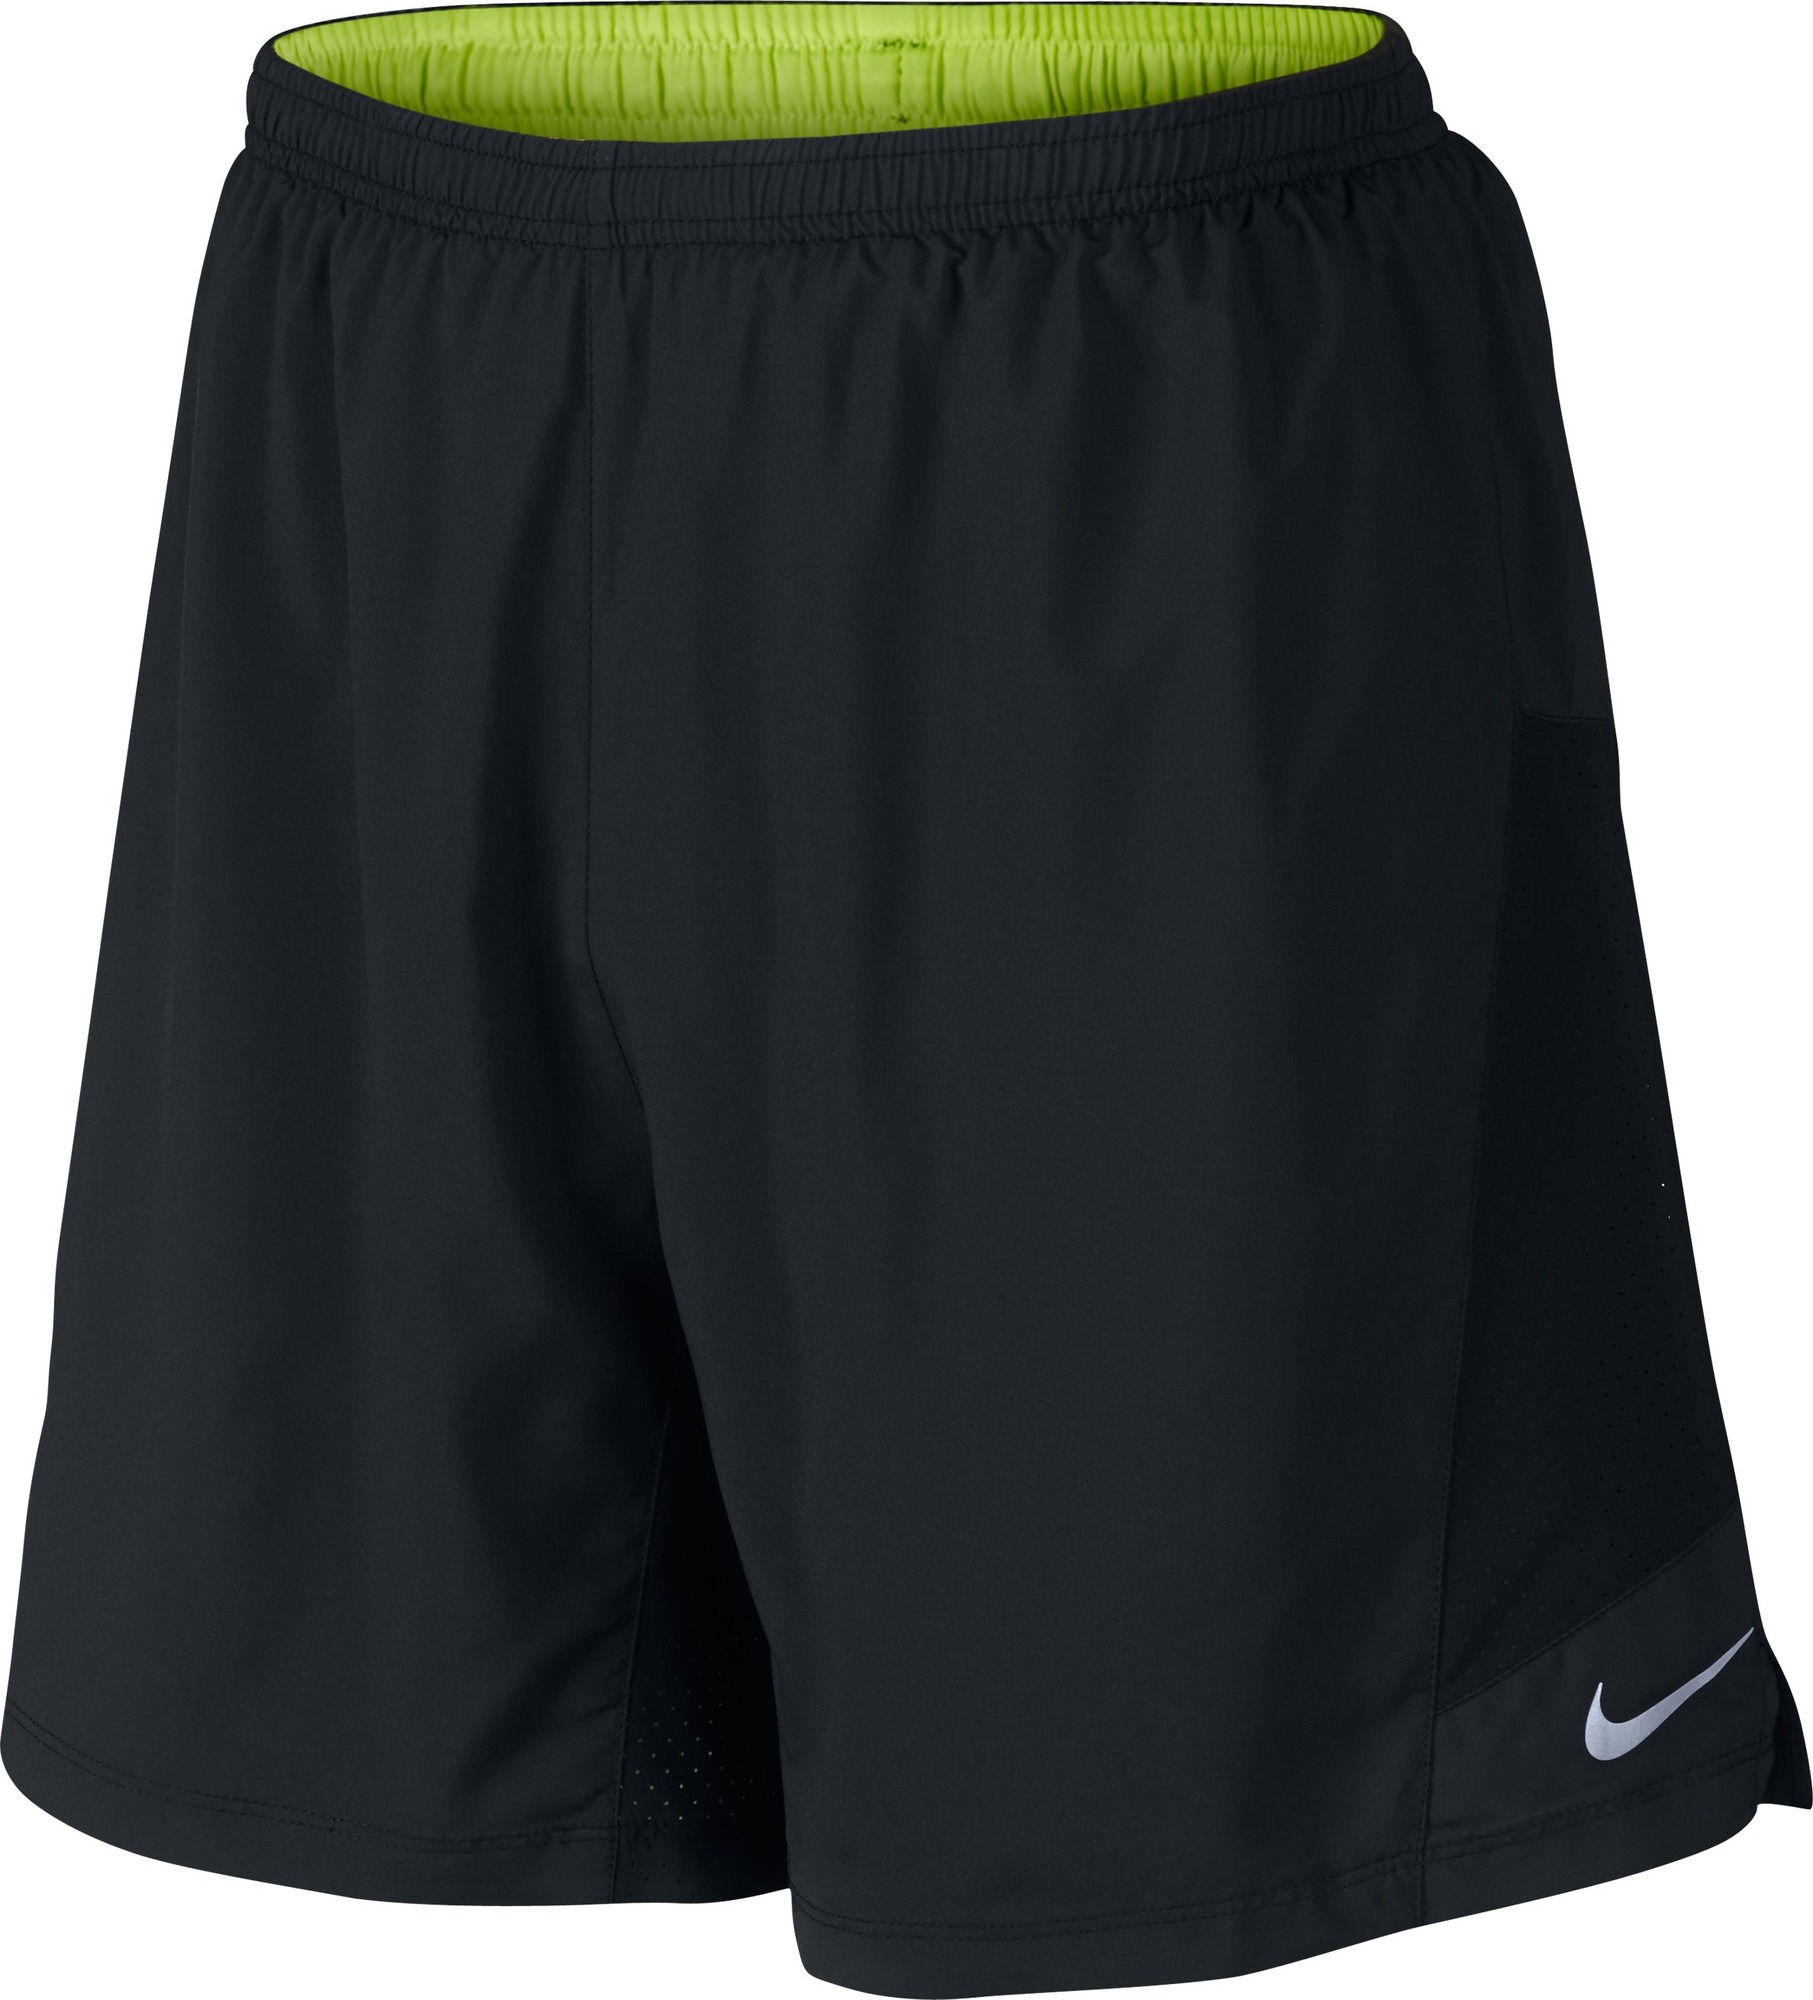 f5df638c93e5ea Nike Pursuit 7″ 2 in 1 shorts (Black) – Coventry Runner